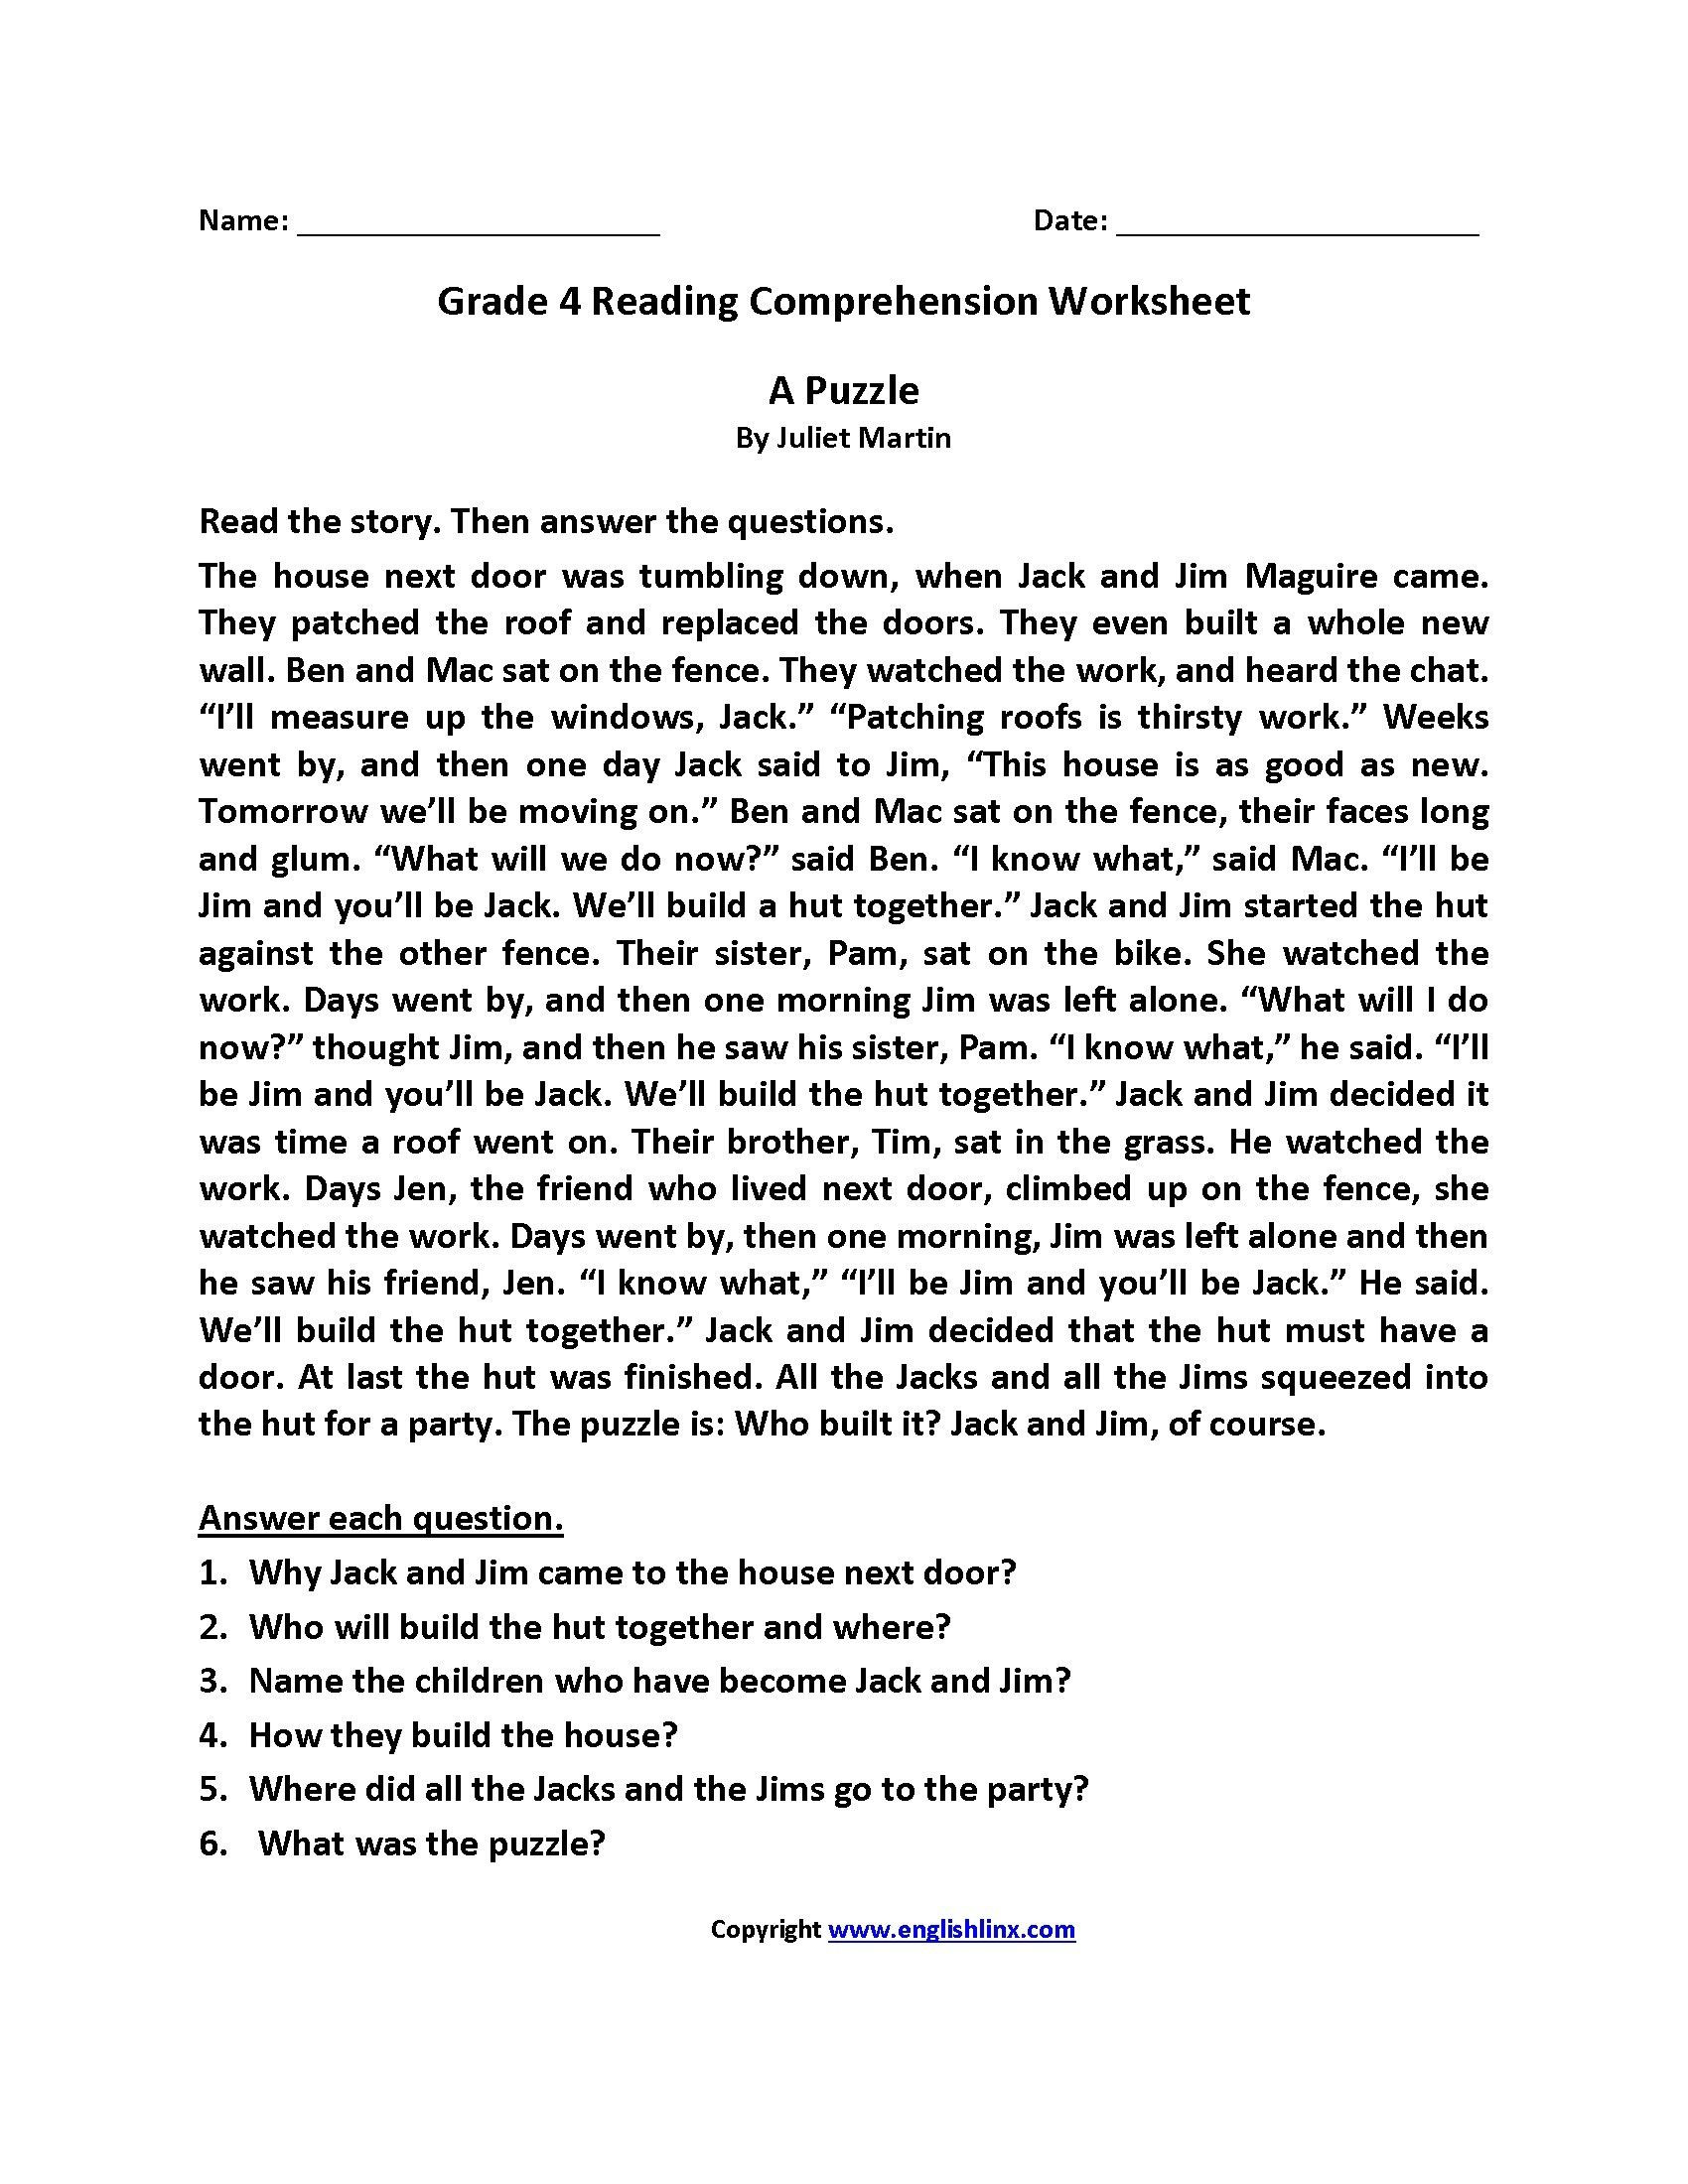 Dialogue Worksheets 4th Grade 4 Worksheet Reading Prehension Worksheets Fourth Grade 4